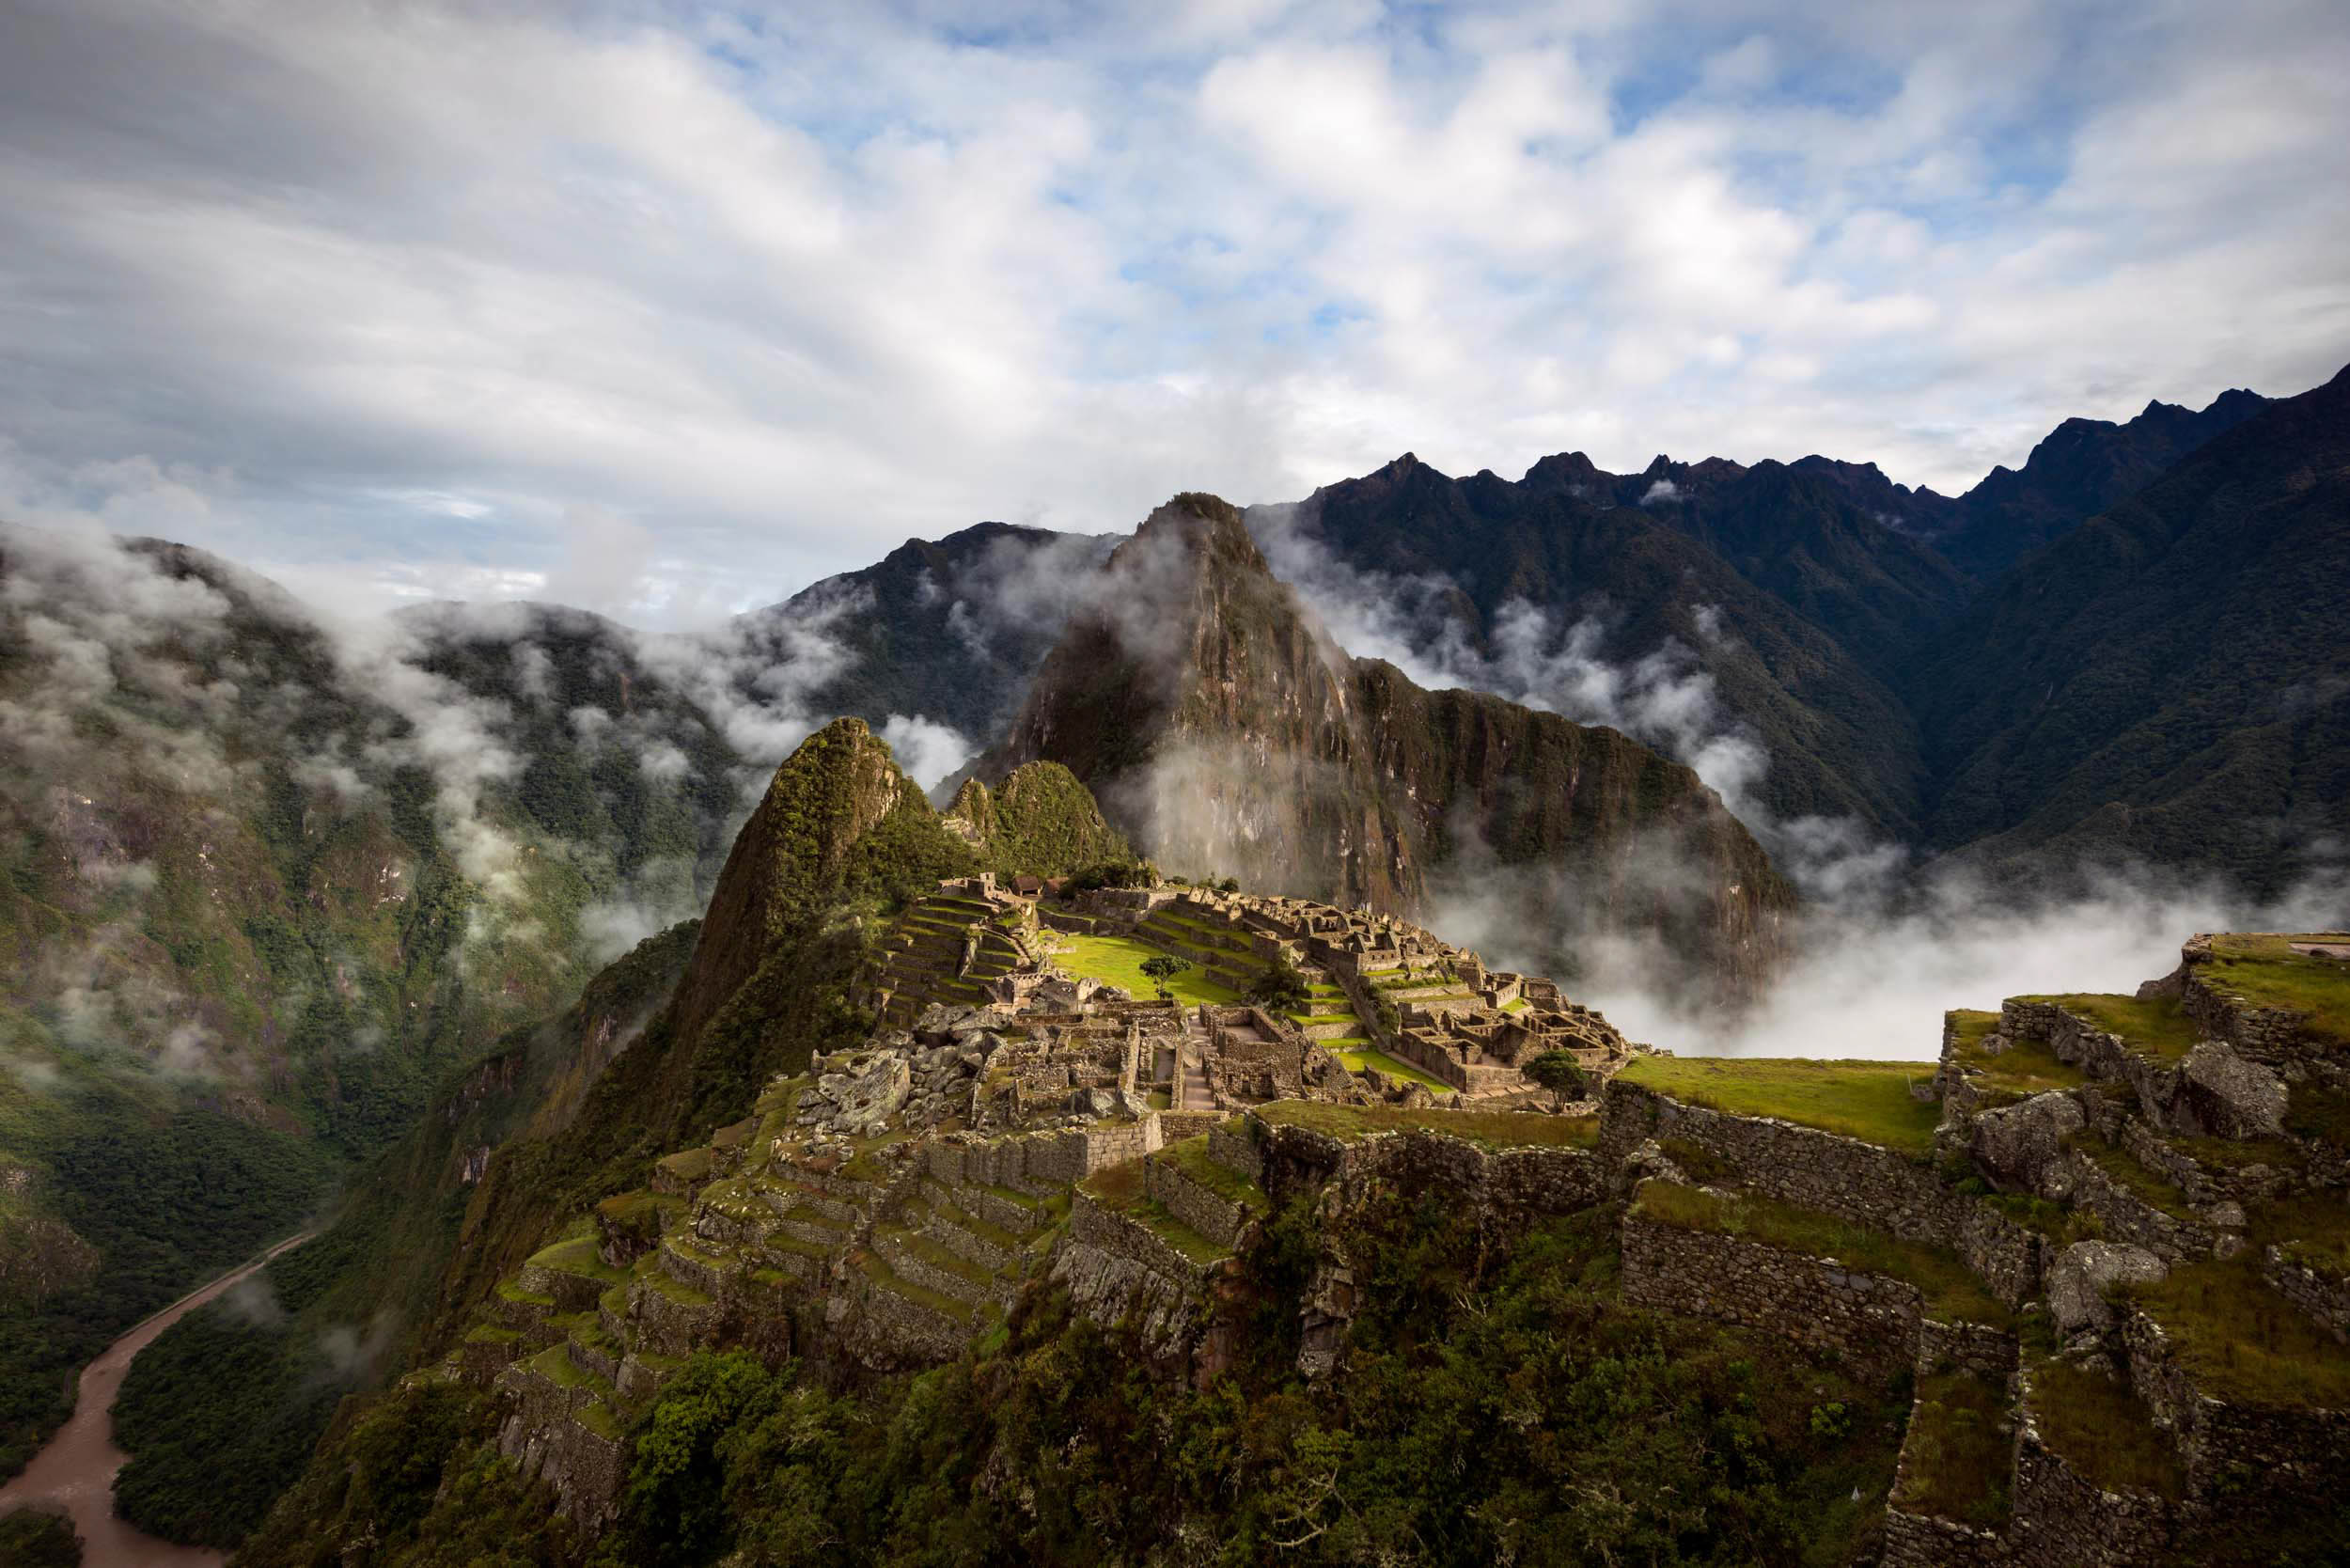 machu-picchu-sacred-valley-peru-south-america-latin-travel-destination